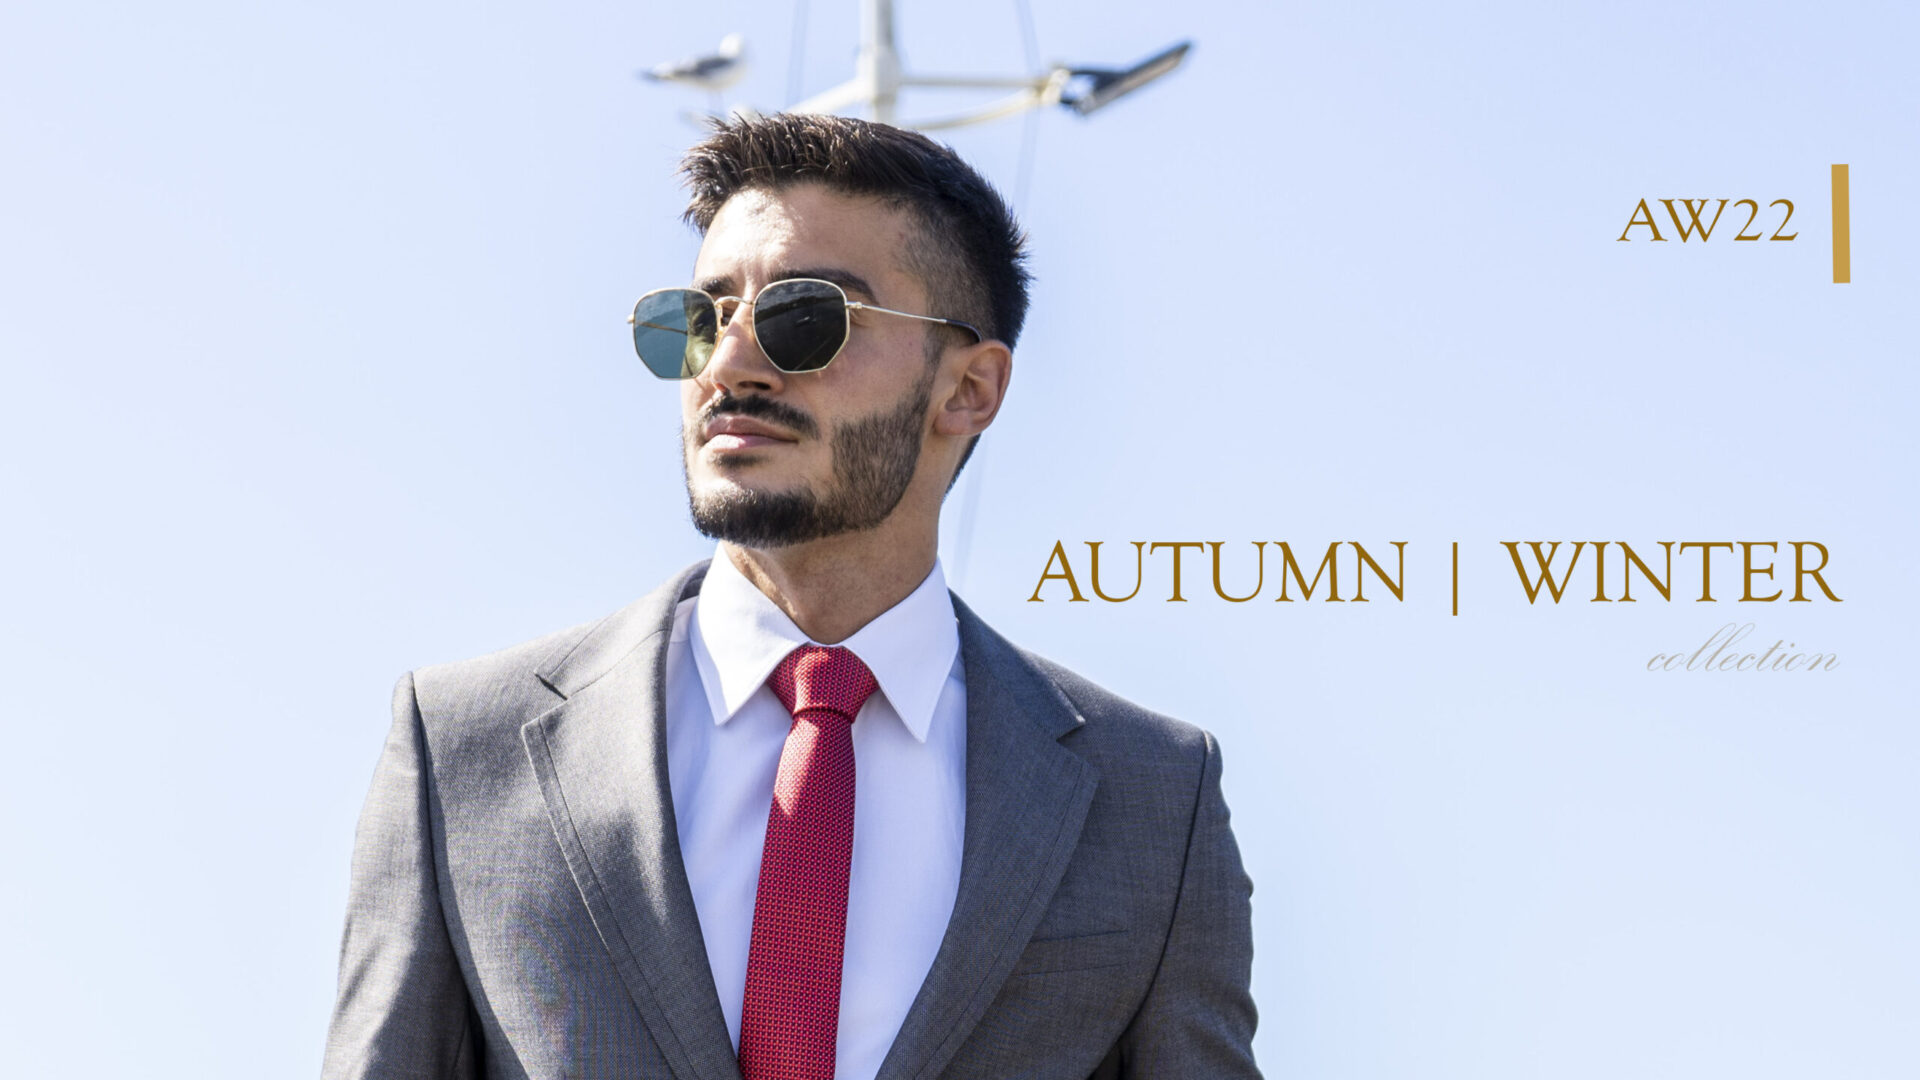 Autumn / Winter Collection - AW22